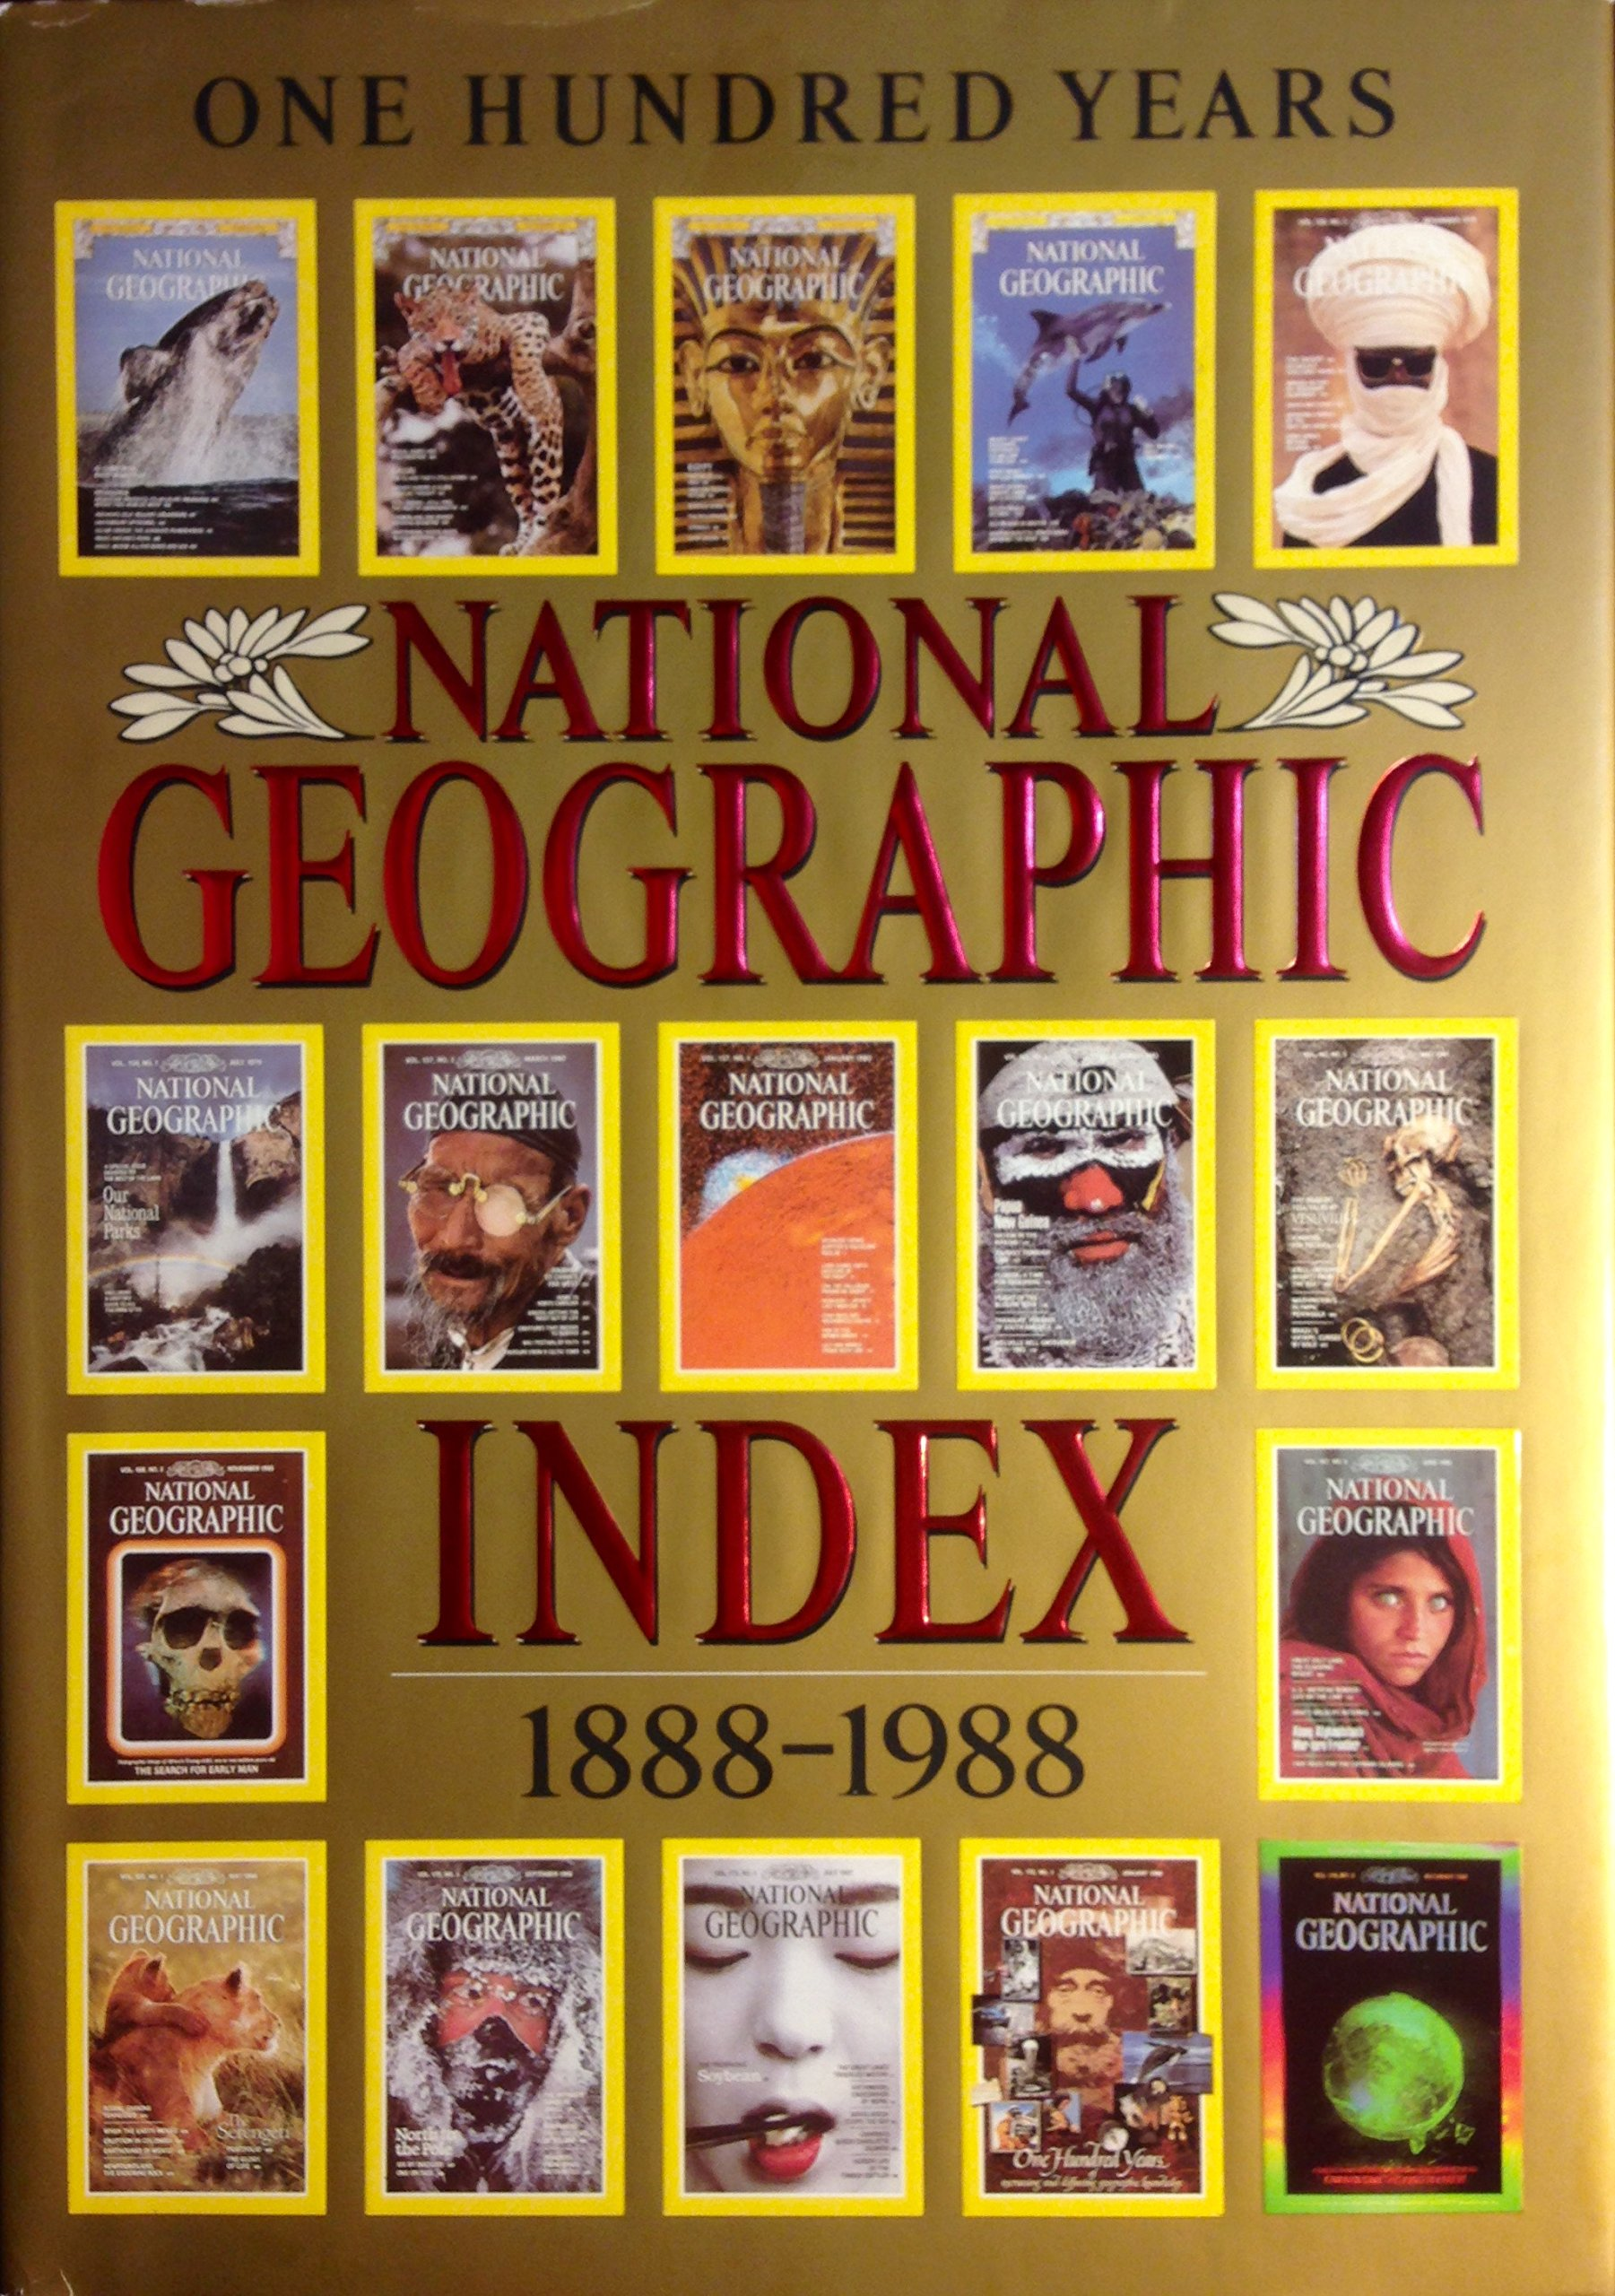 NATIONAL GEOGRAPHIC INDEX: One Hundred Years, 1888-1988: Wilbur